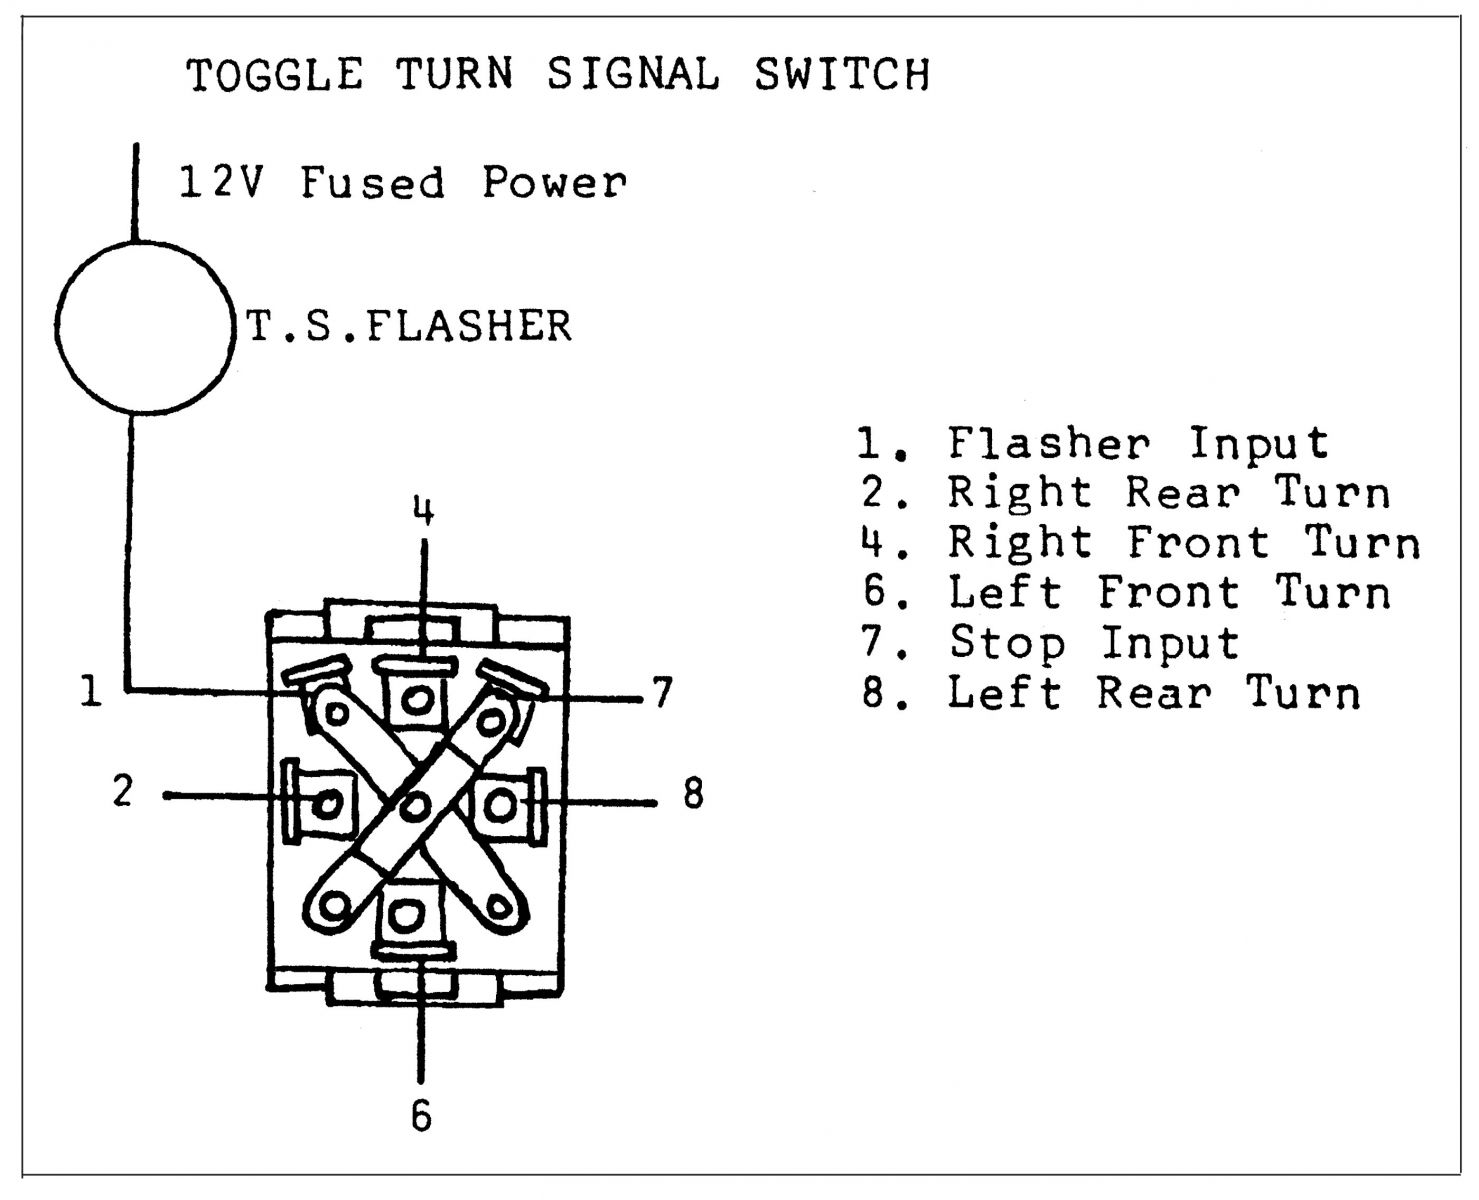 Turn signals 3 turn signals for early hot rods hotrod hotline turn signal kit wiring diagram at reclaimingppi.co